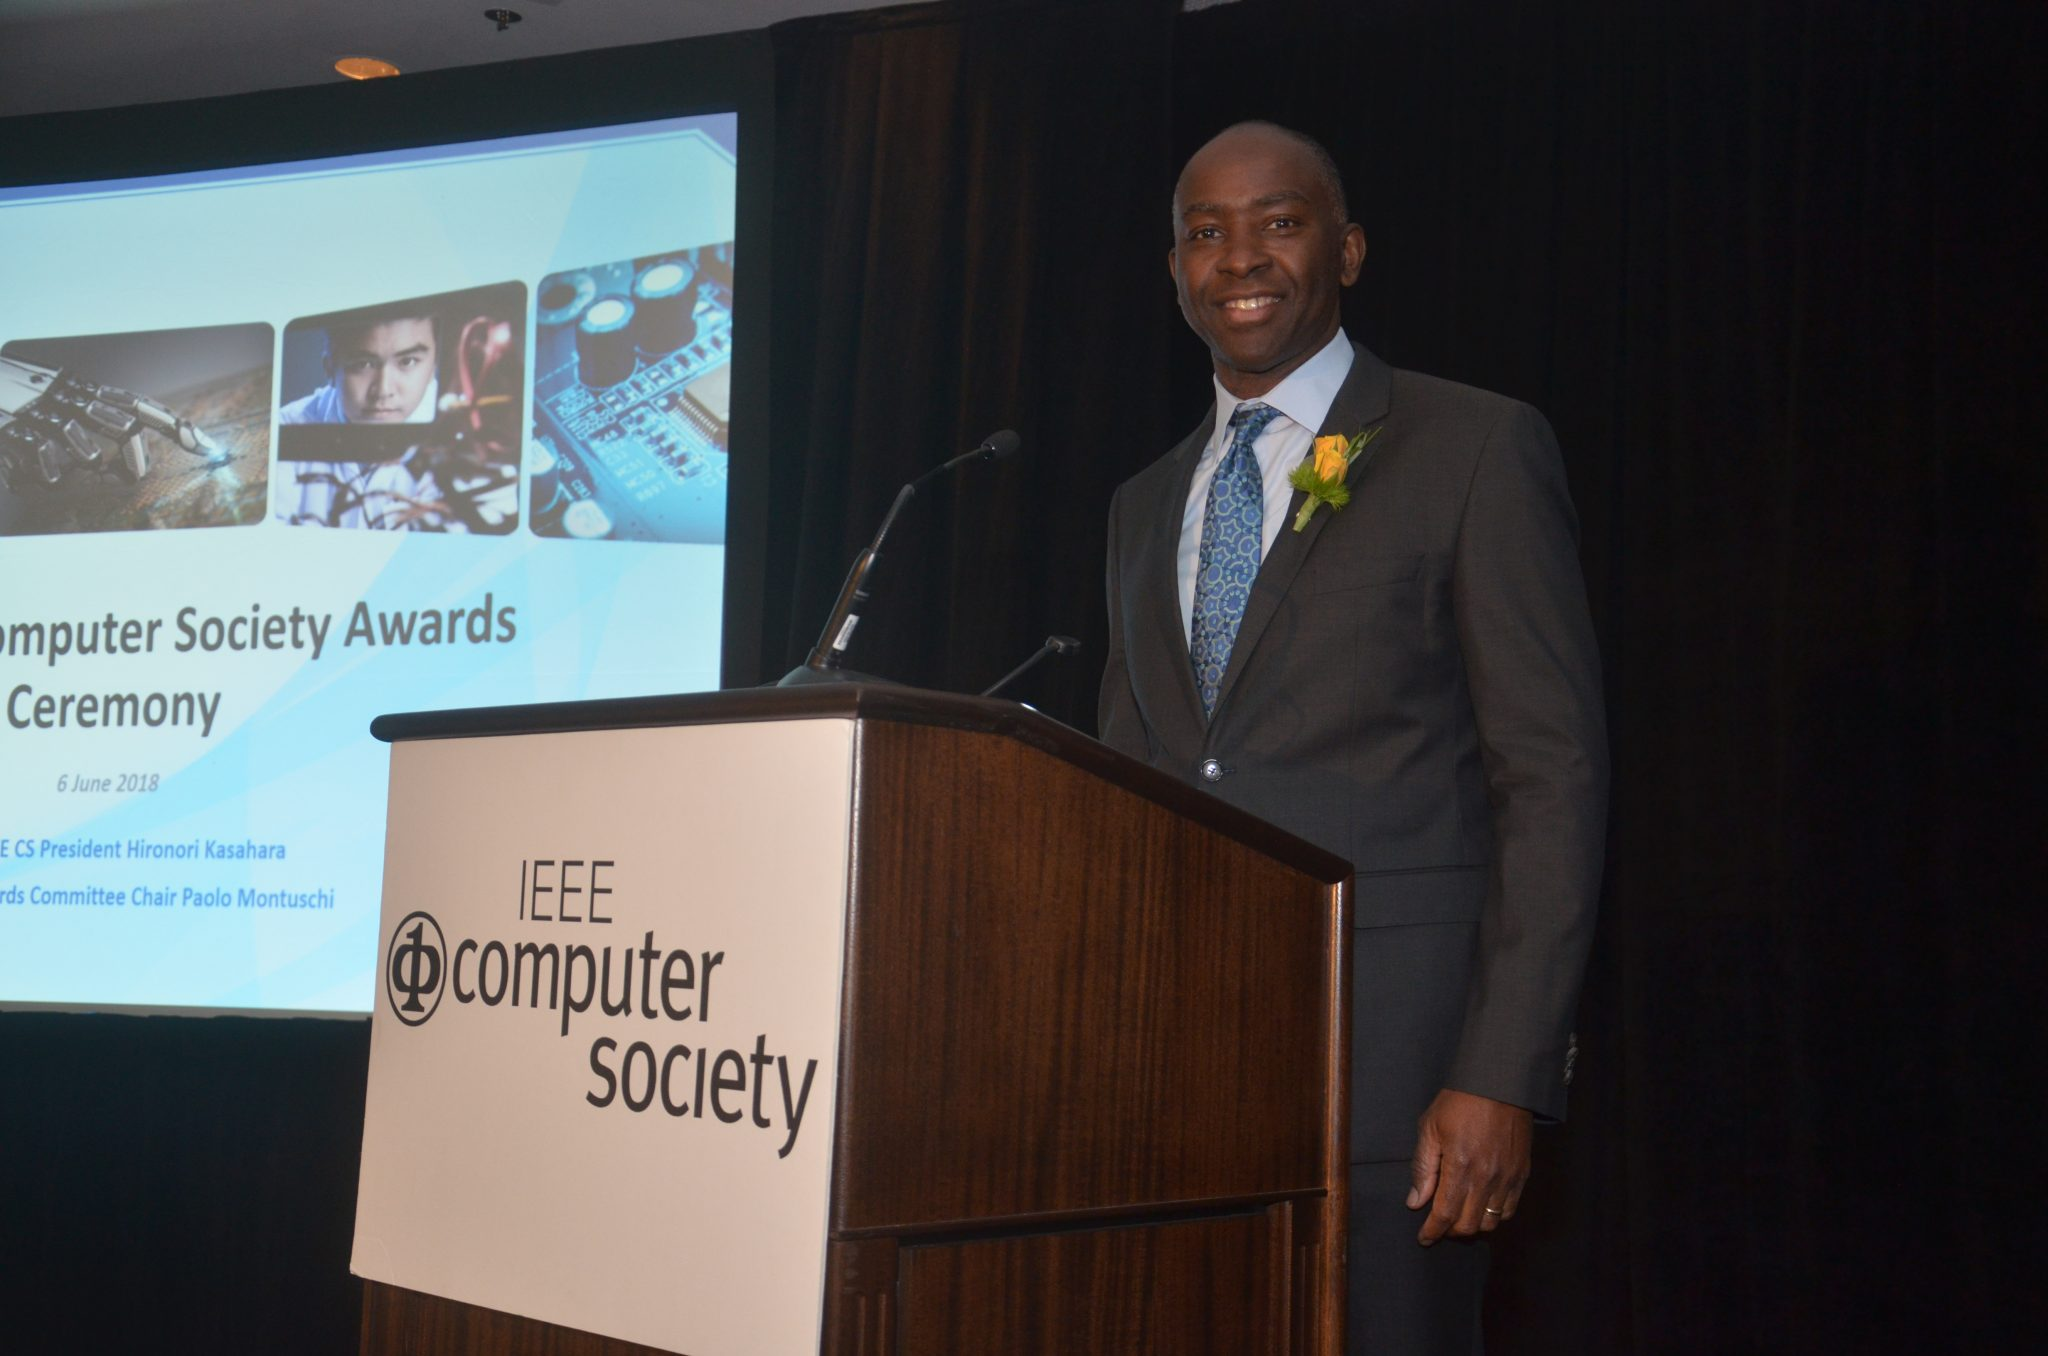 Oyekunle Olukotun, Cadence Design Systems Professor of Electrical Engineering and Computer Science at Stanford University, attends a June award ceremony to receive the IEEE Computer Society 2018 Harry H. Goode Award.